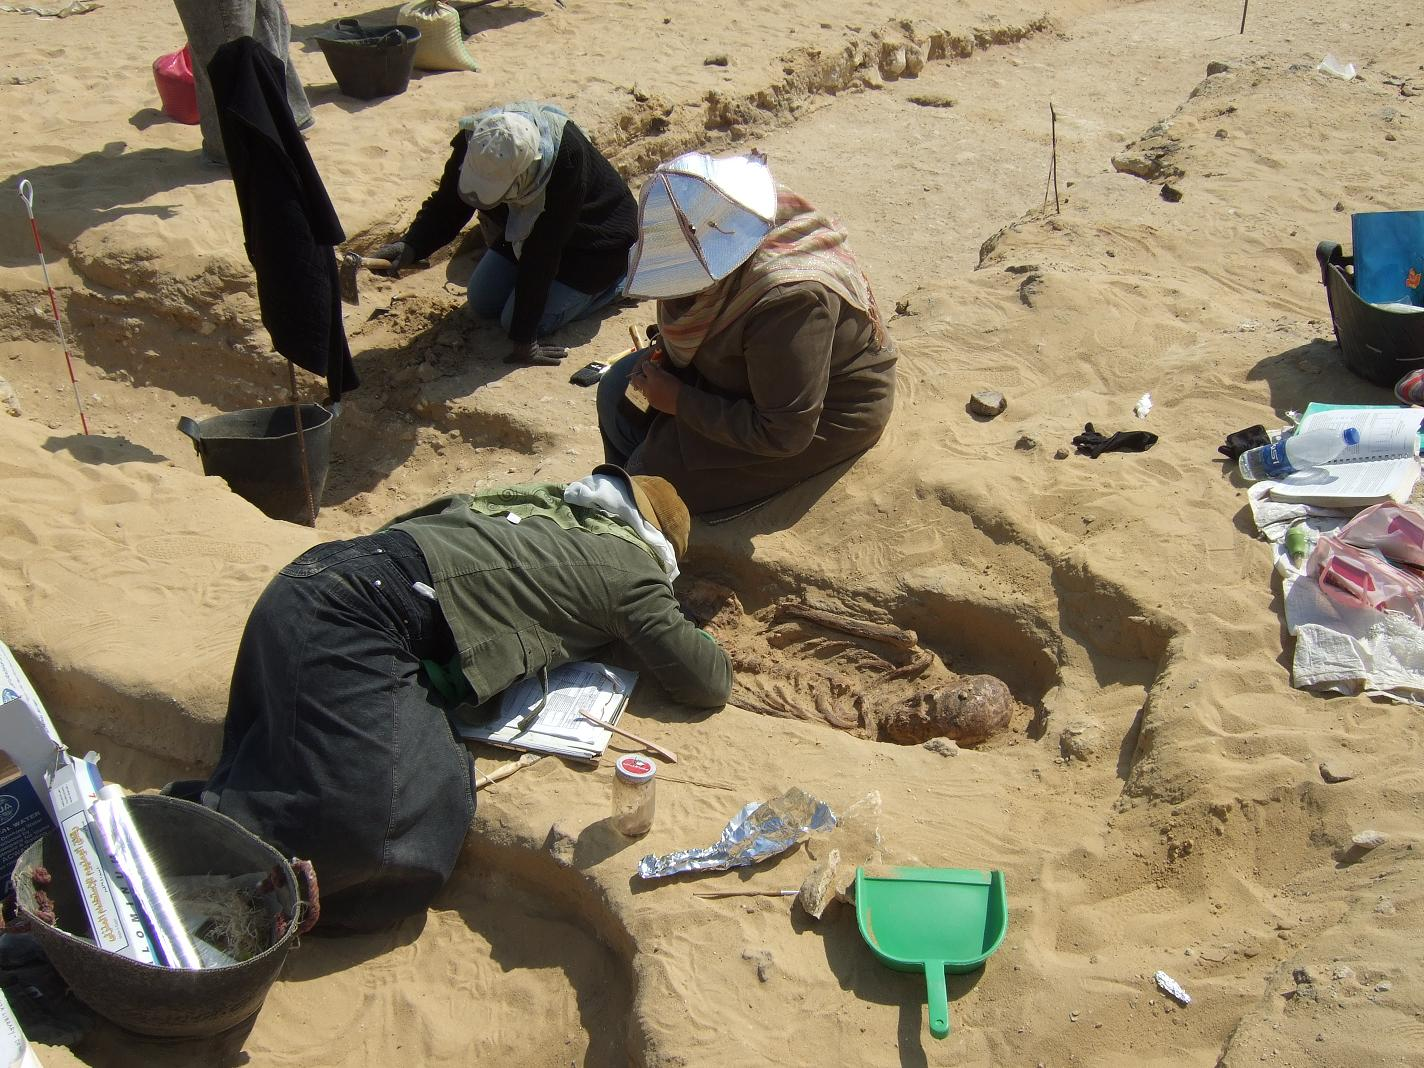 AERA/ARCE field school students with a Late Period burial.